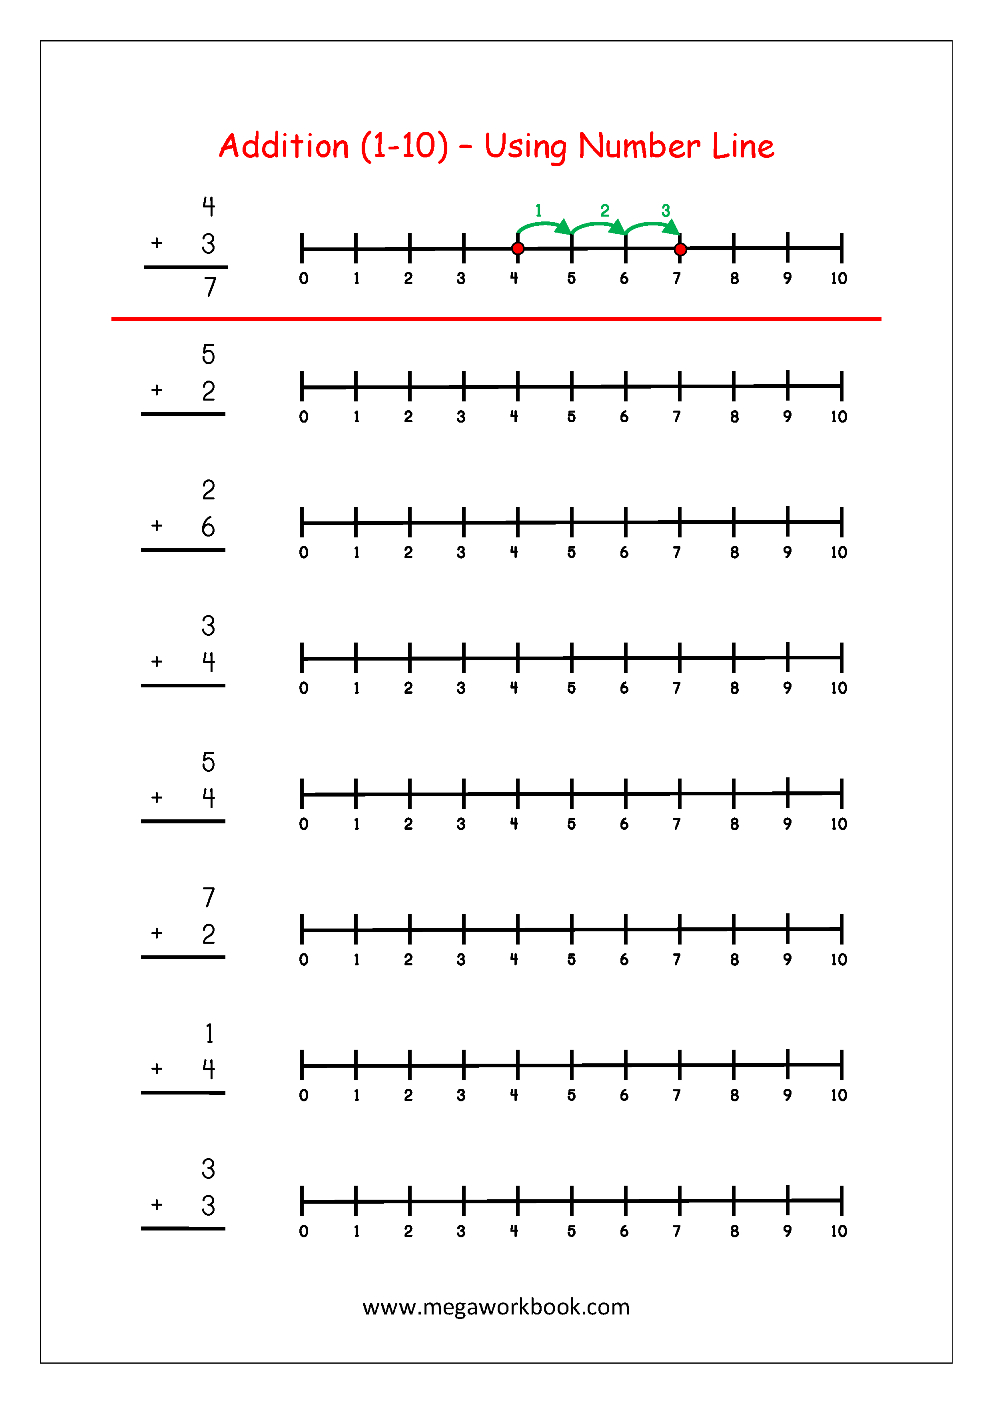 Free Printable Number Addition Worksheets (1-10) For Kindergarten | Free Printable Number Line Worksheets